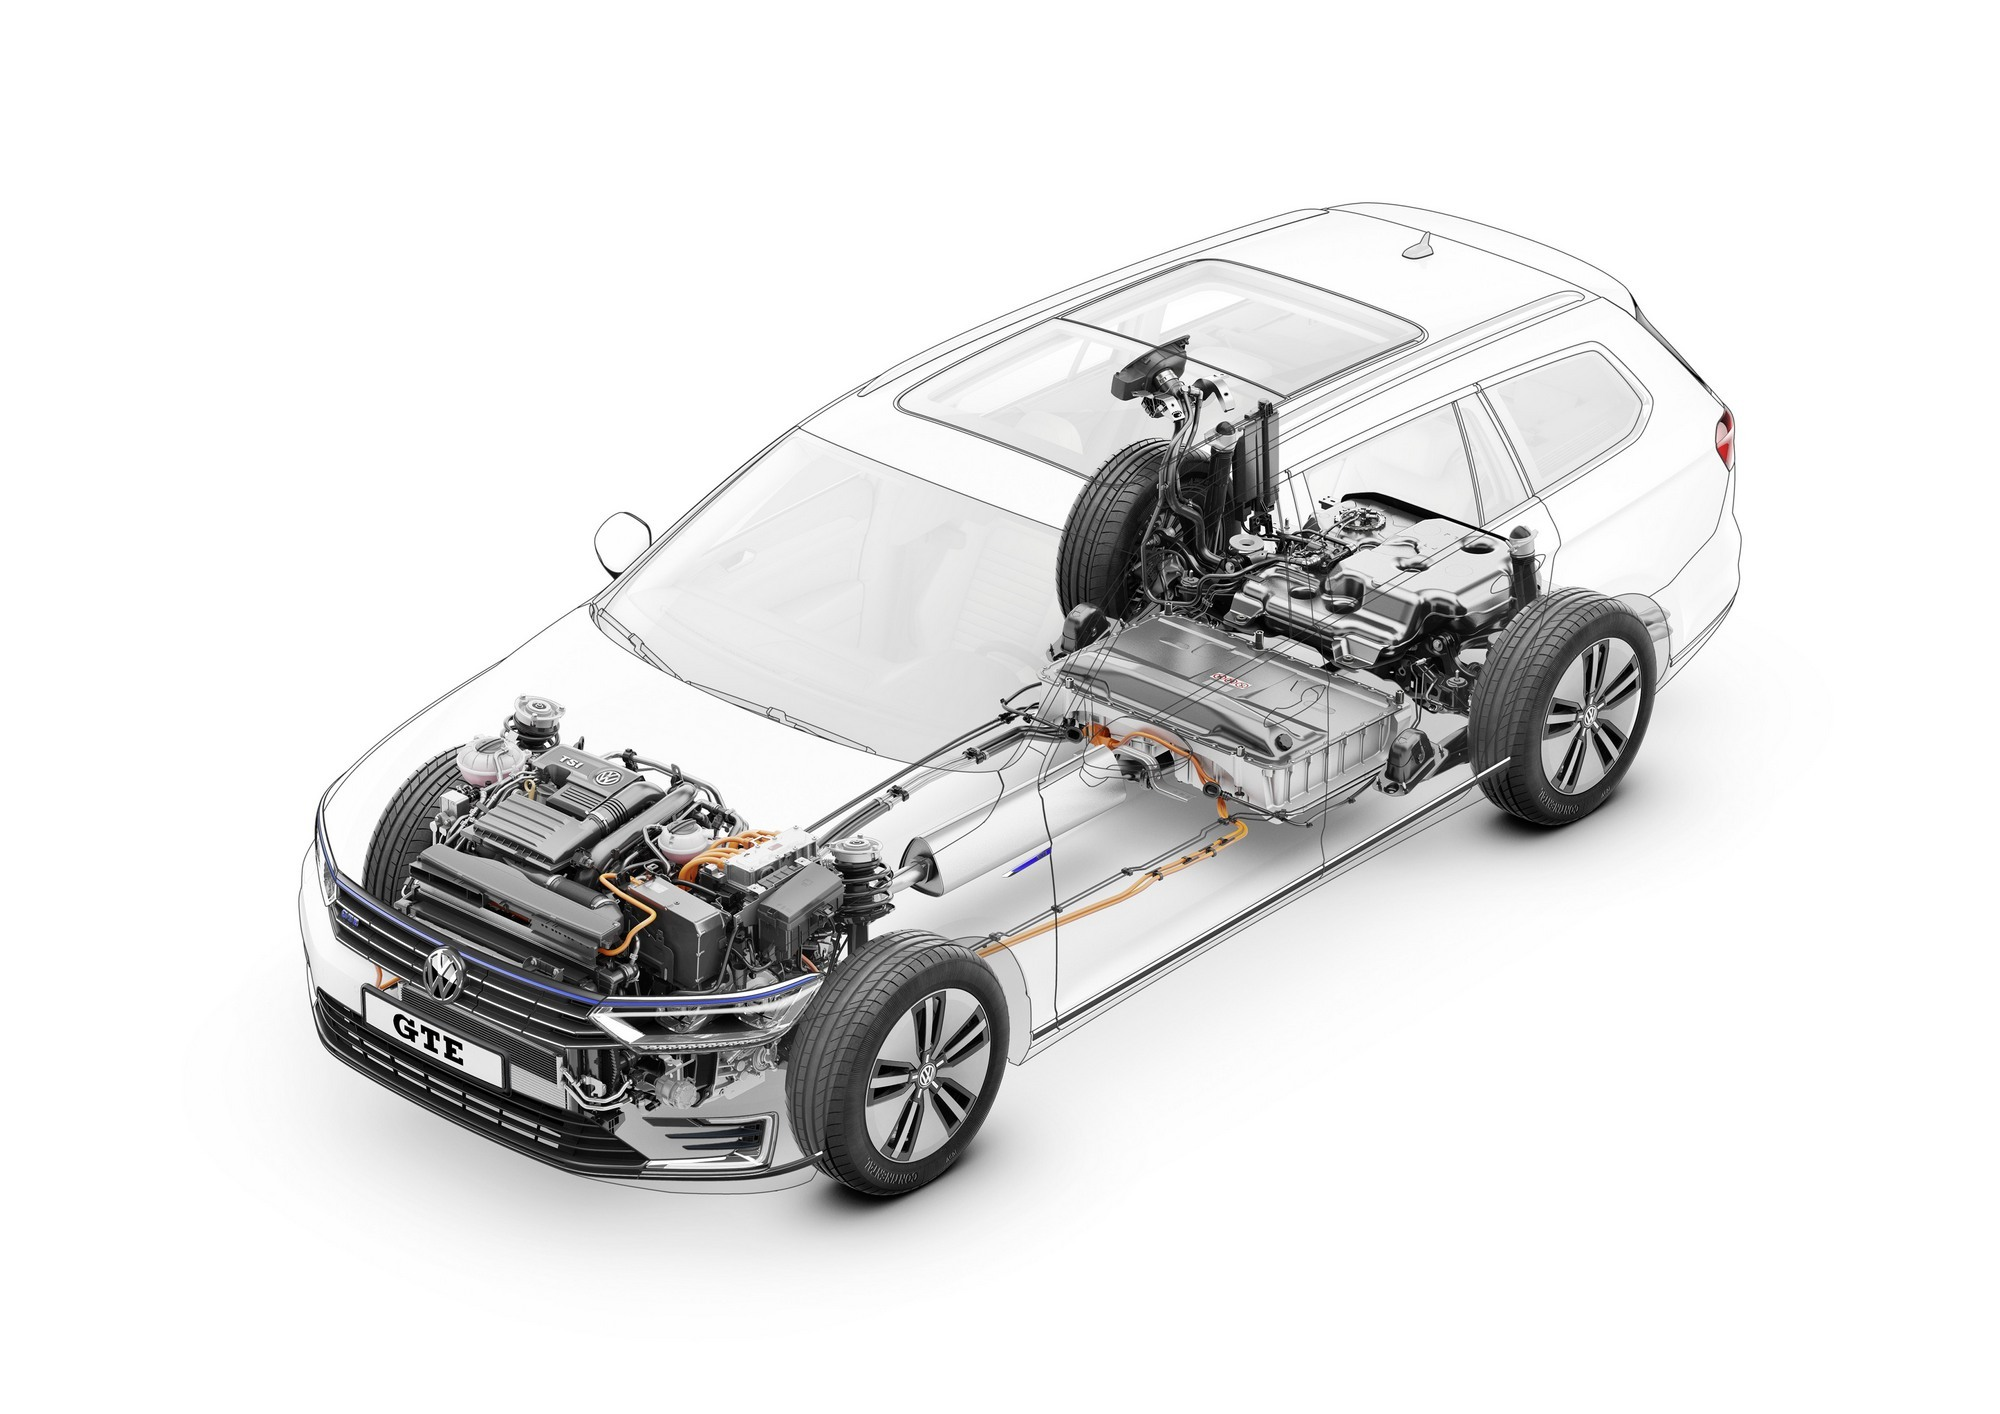 The-Volkswagen-Passat-GTE-Has-New-Images,-Price-In-Germany-And-A-Consumption-of-1.6-L---100-km---tinoshare.com